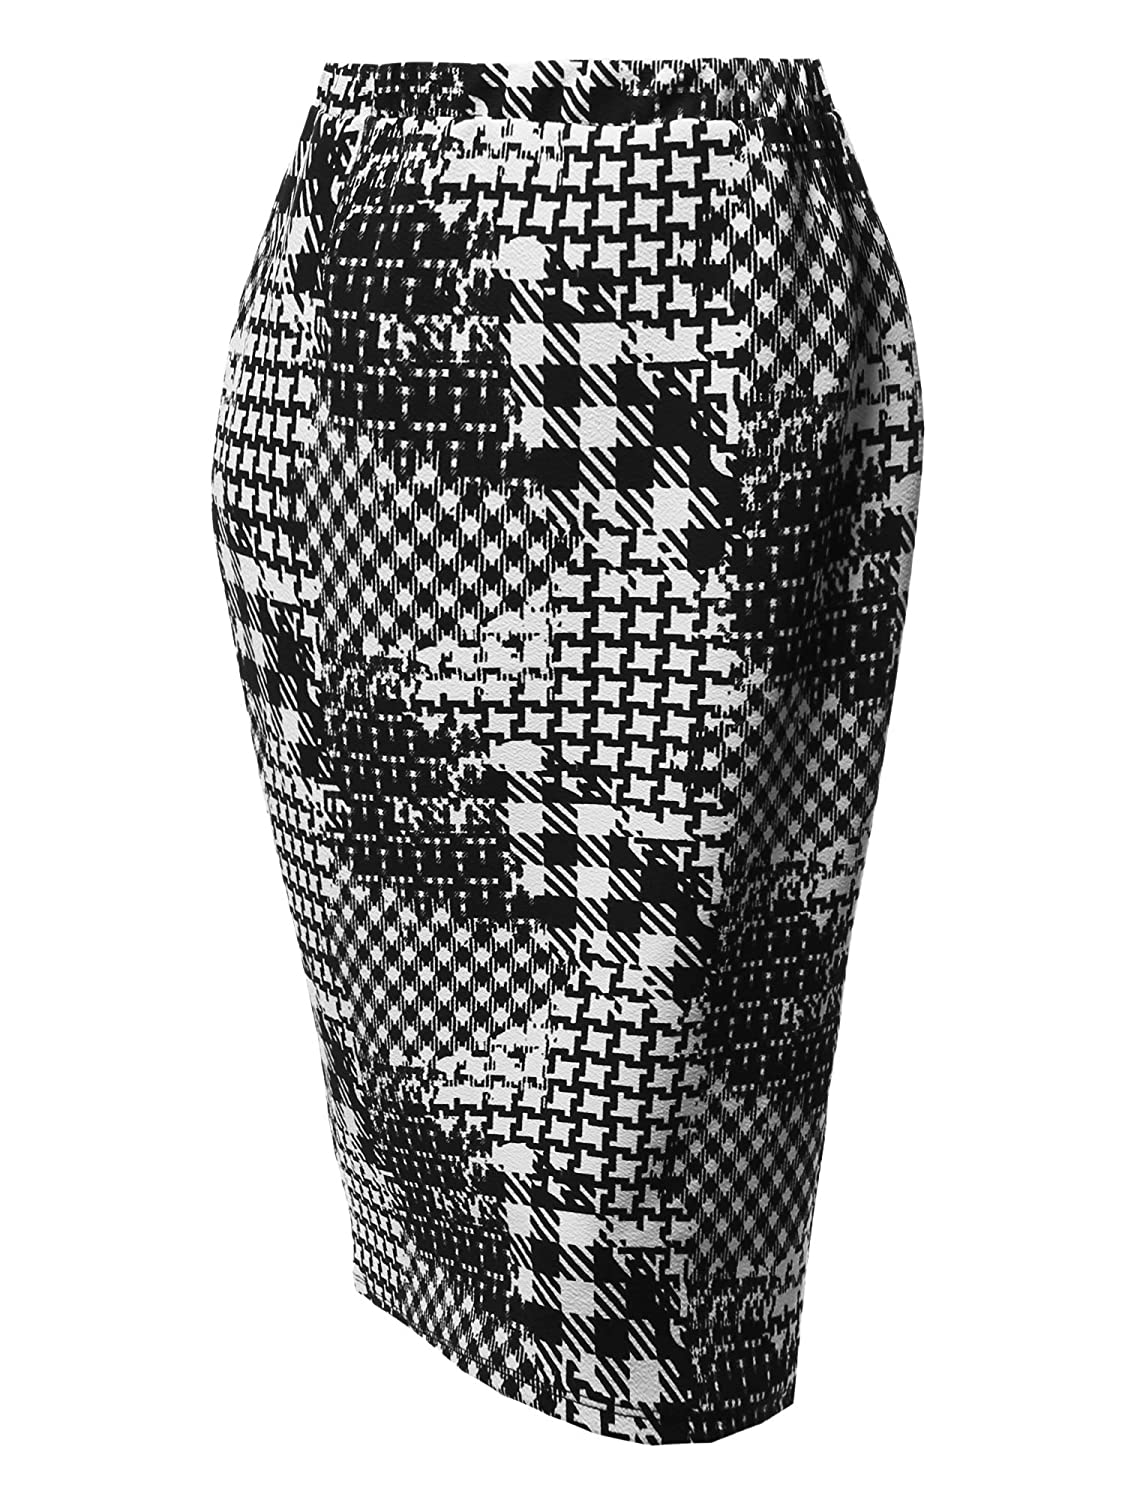 Aawskm0001 Black White 2 Awesome21 Women's Fitted Stretch Solid Print High Waist Midi Pencil Skirt  Made in USA